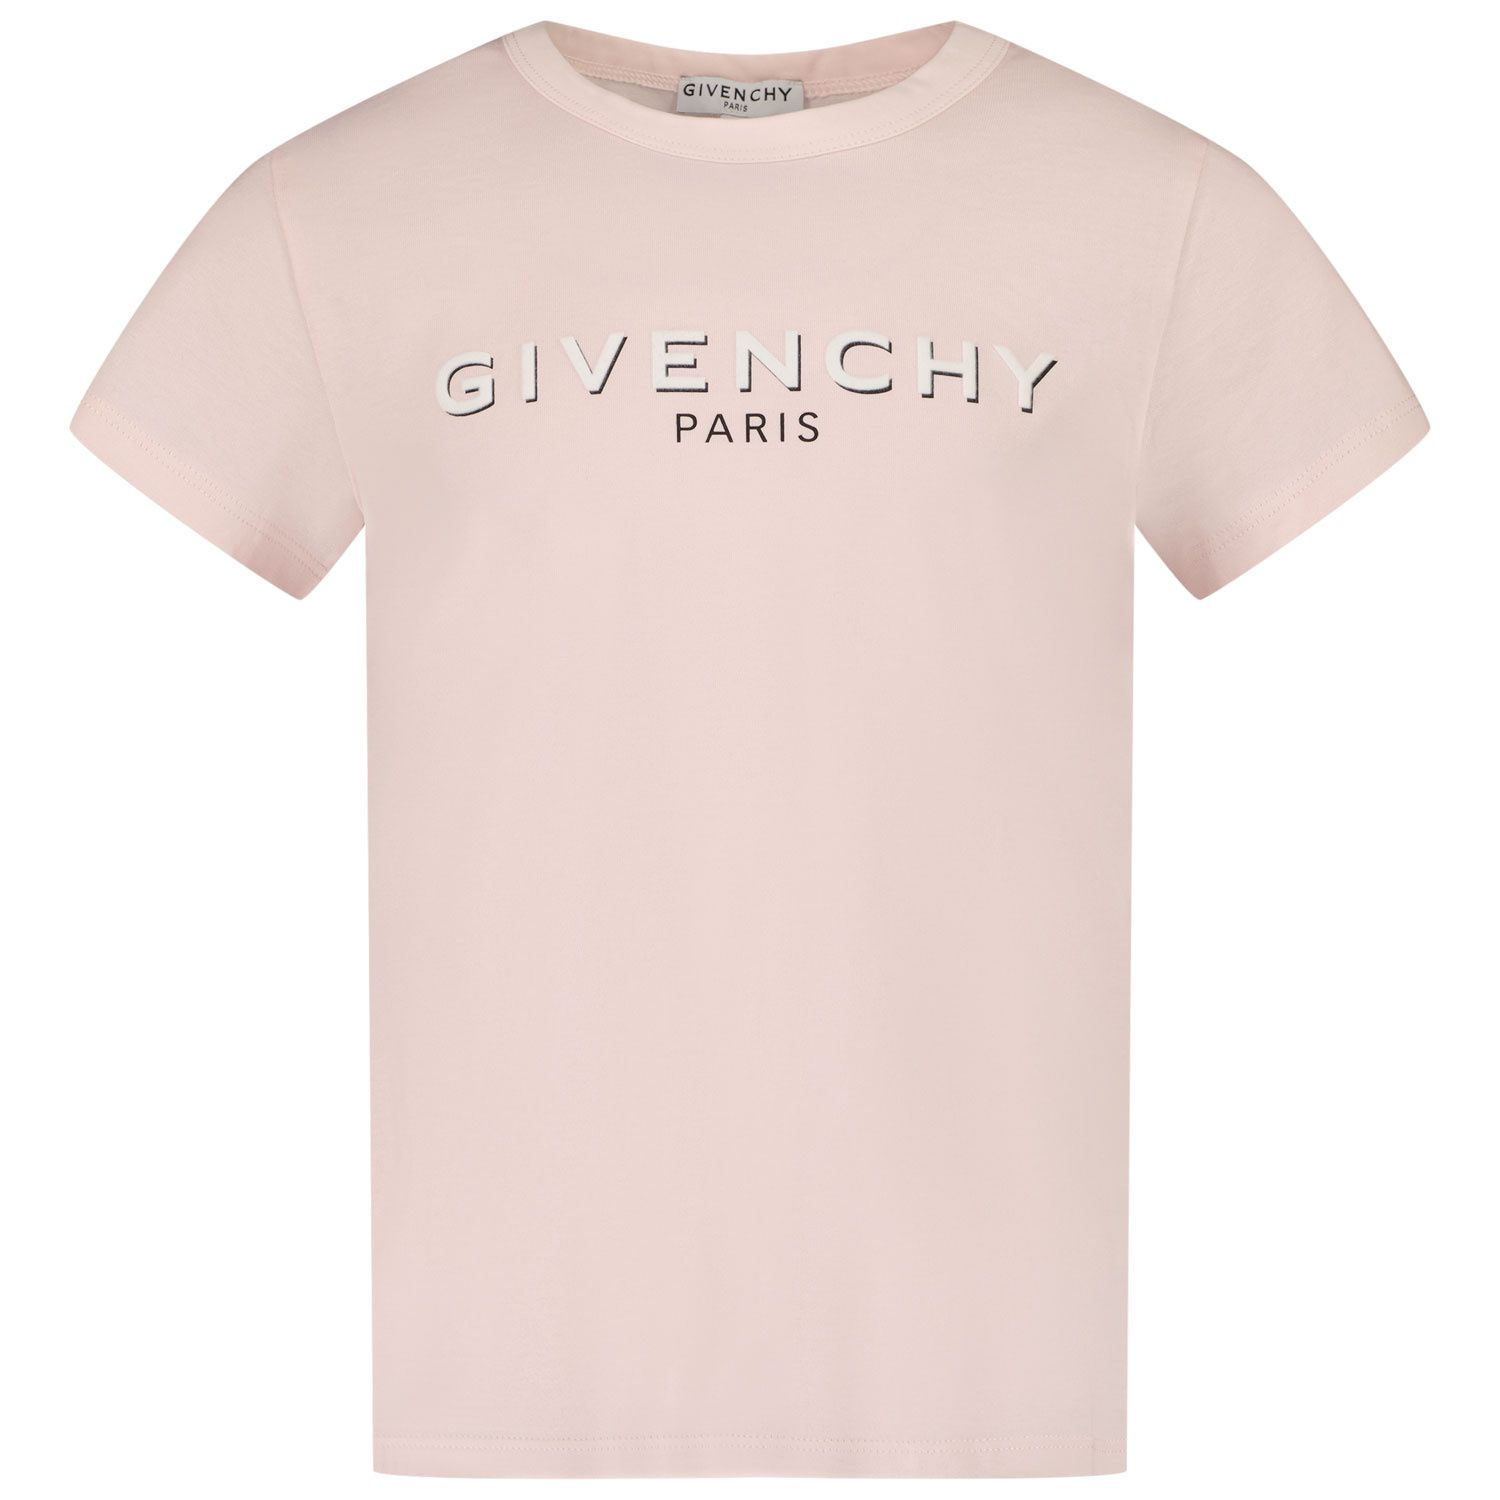 Picture of Givenchy H15214 kids t-shirt light pink